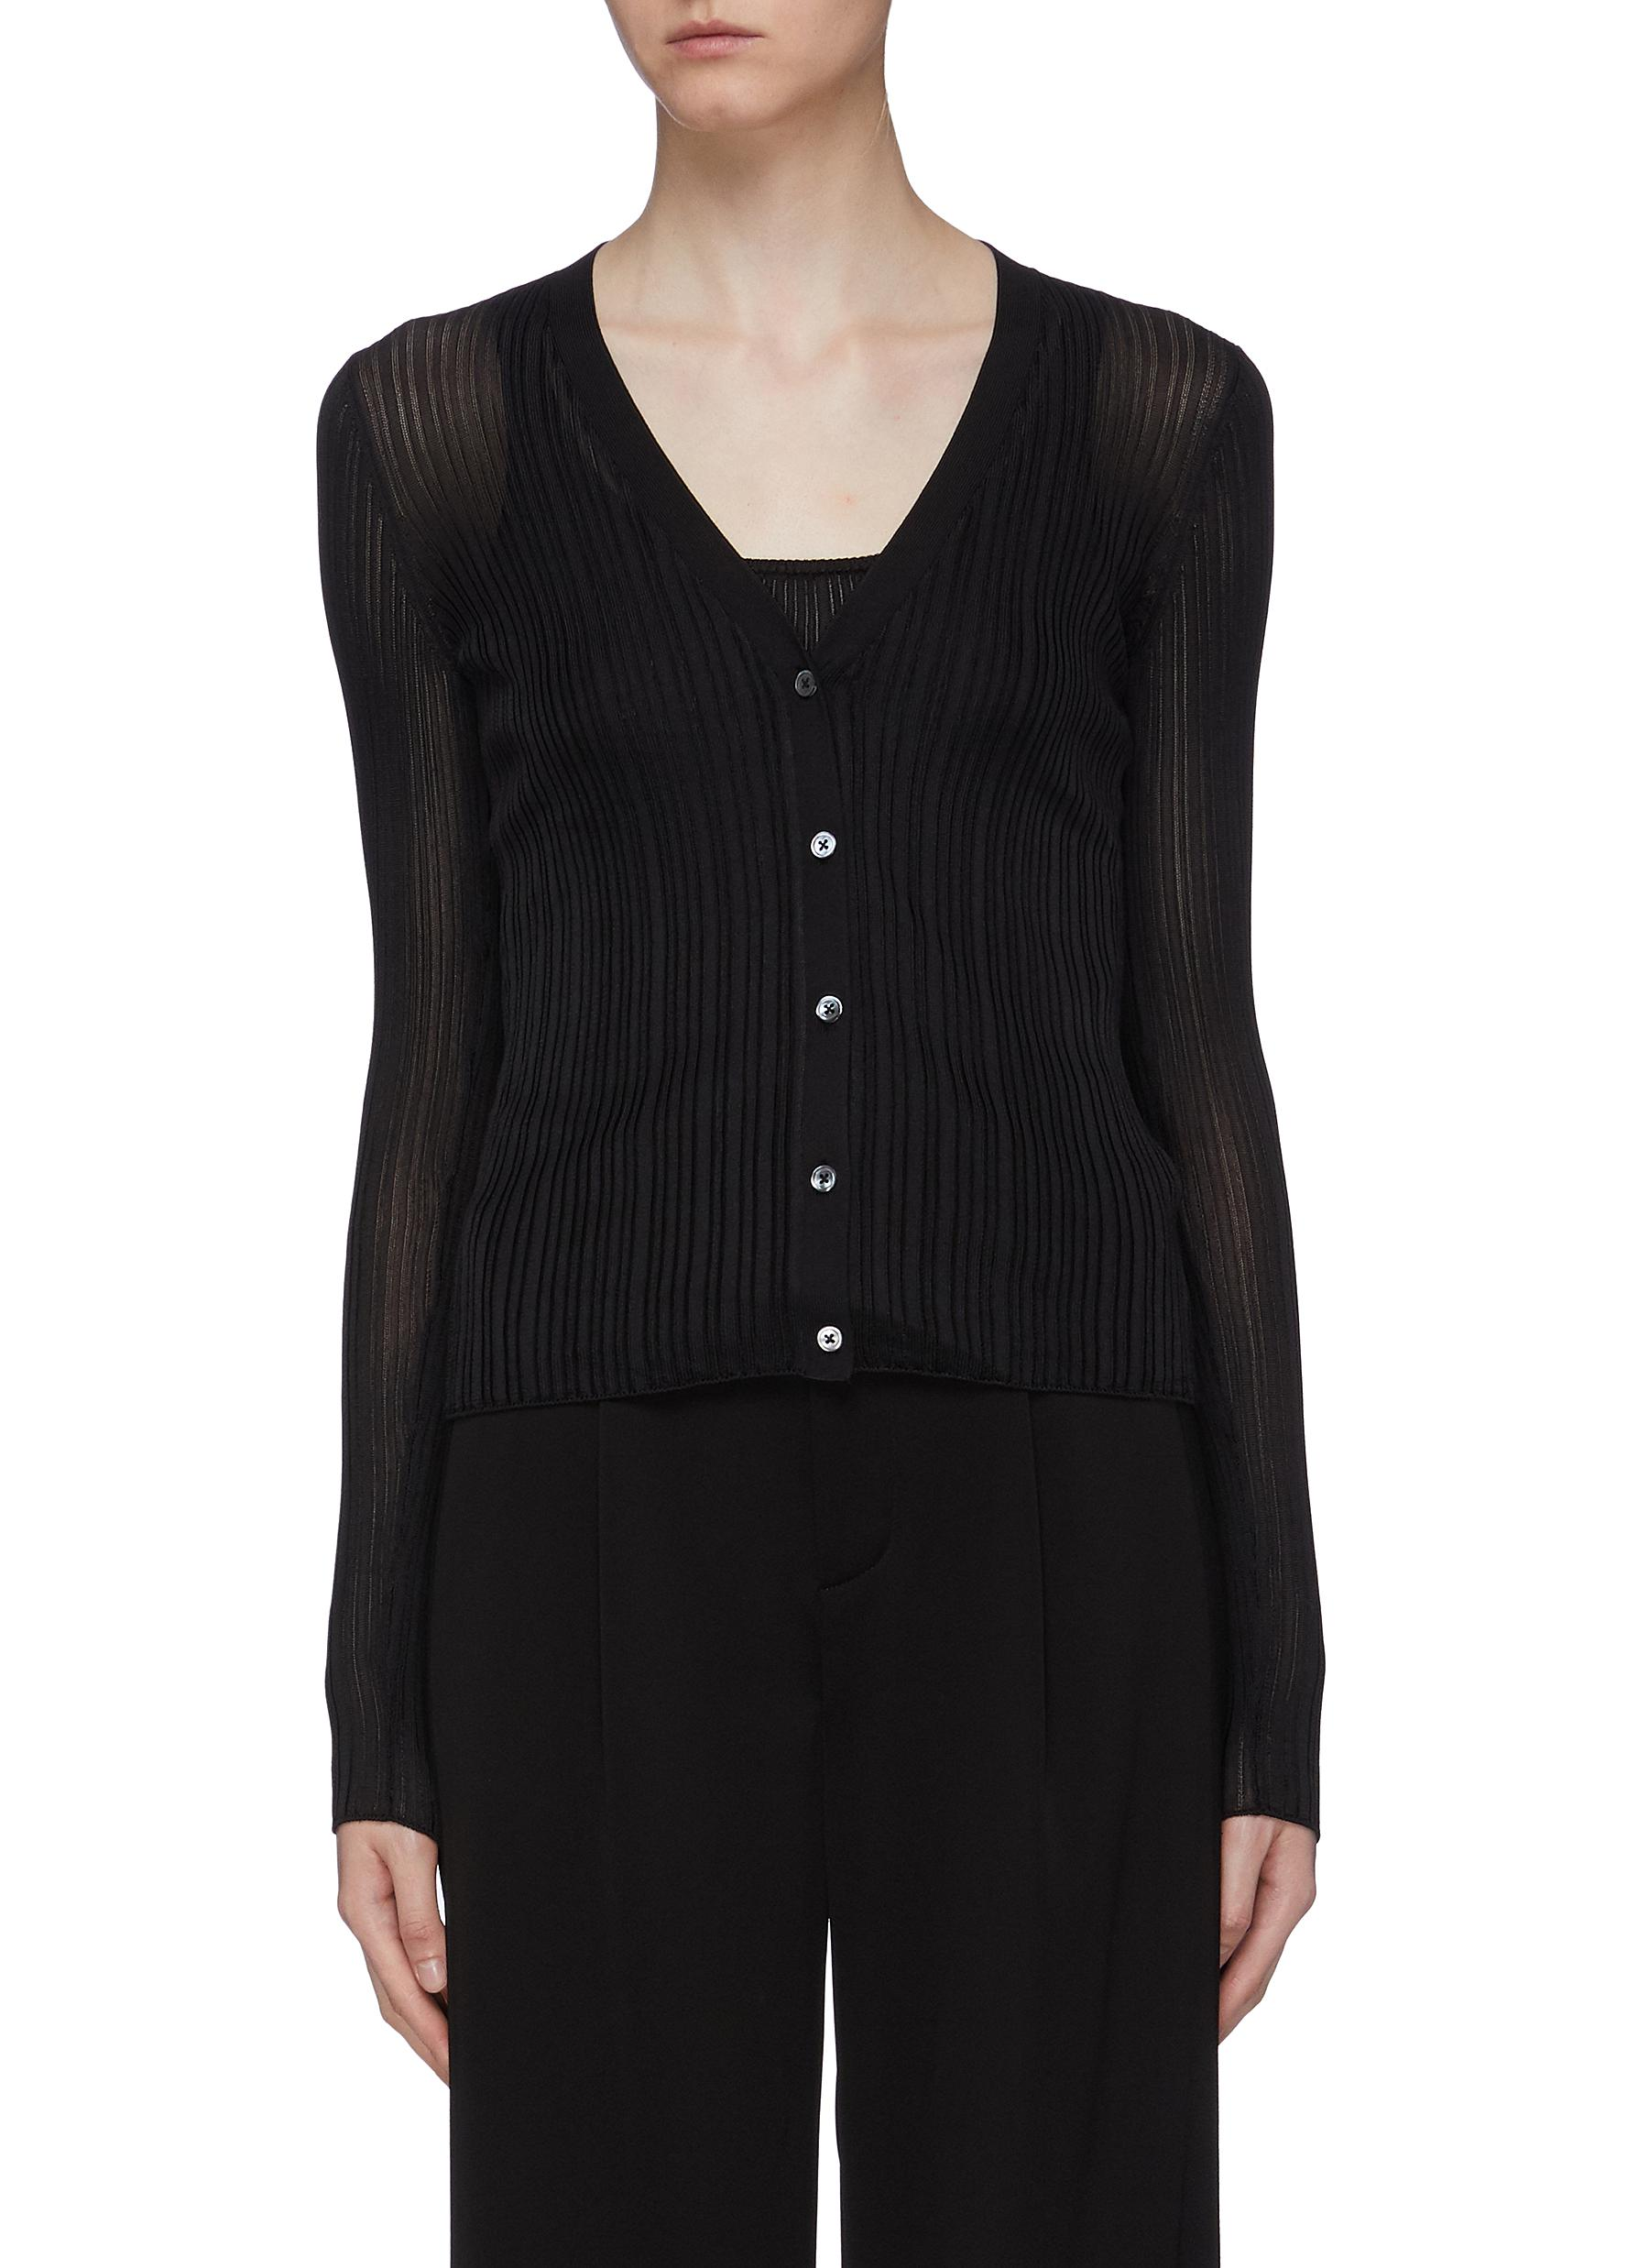 Ribbed pointelle knit cardigan by Theory